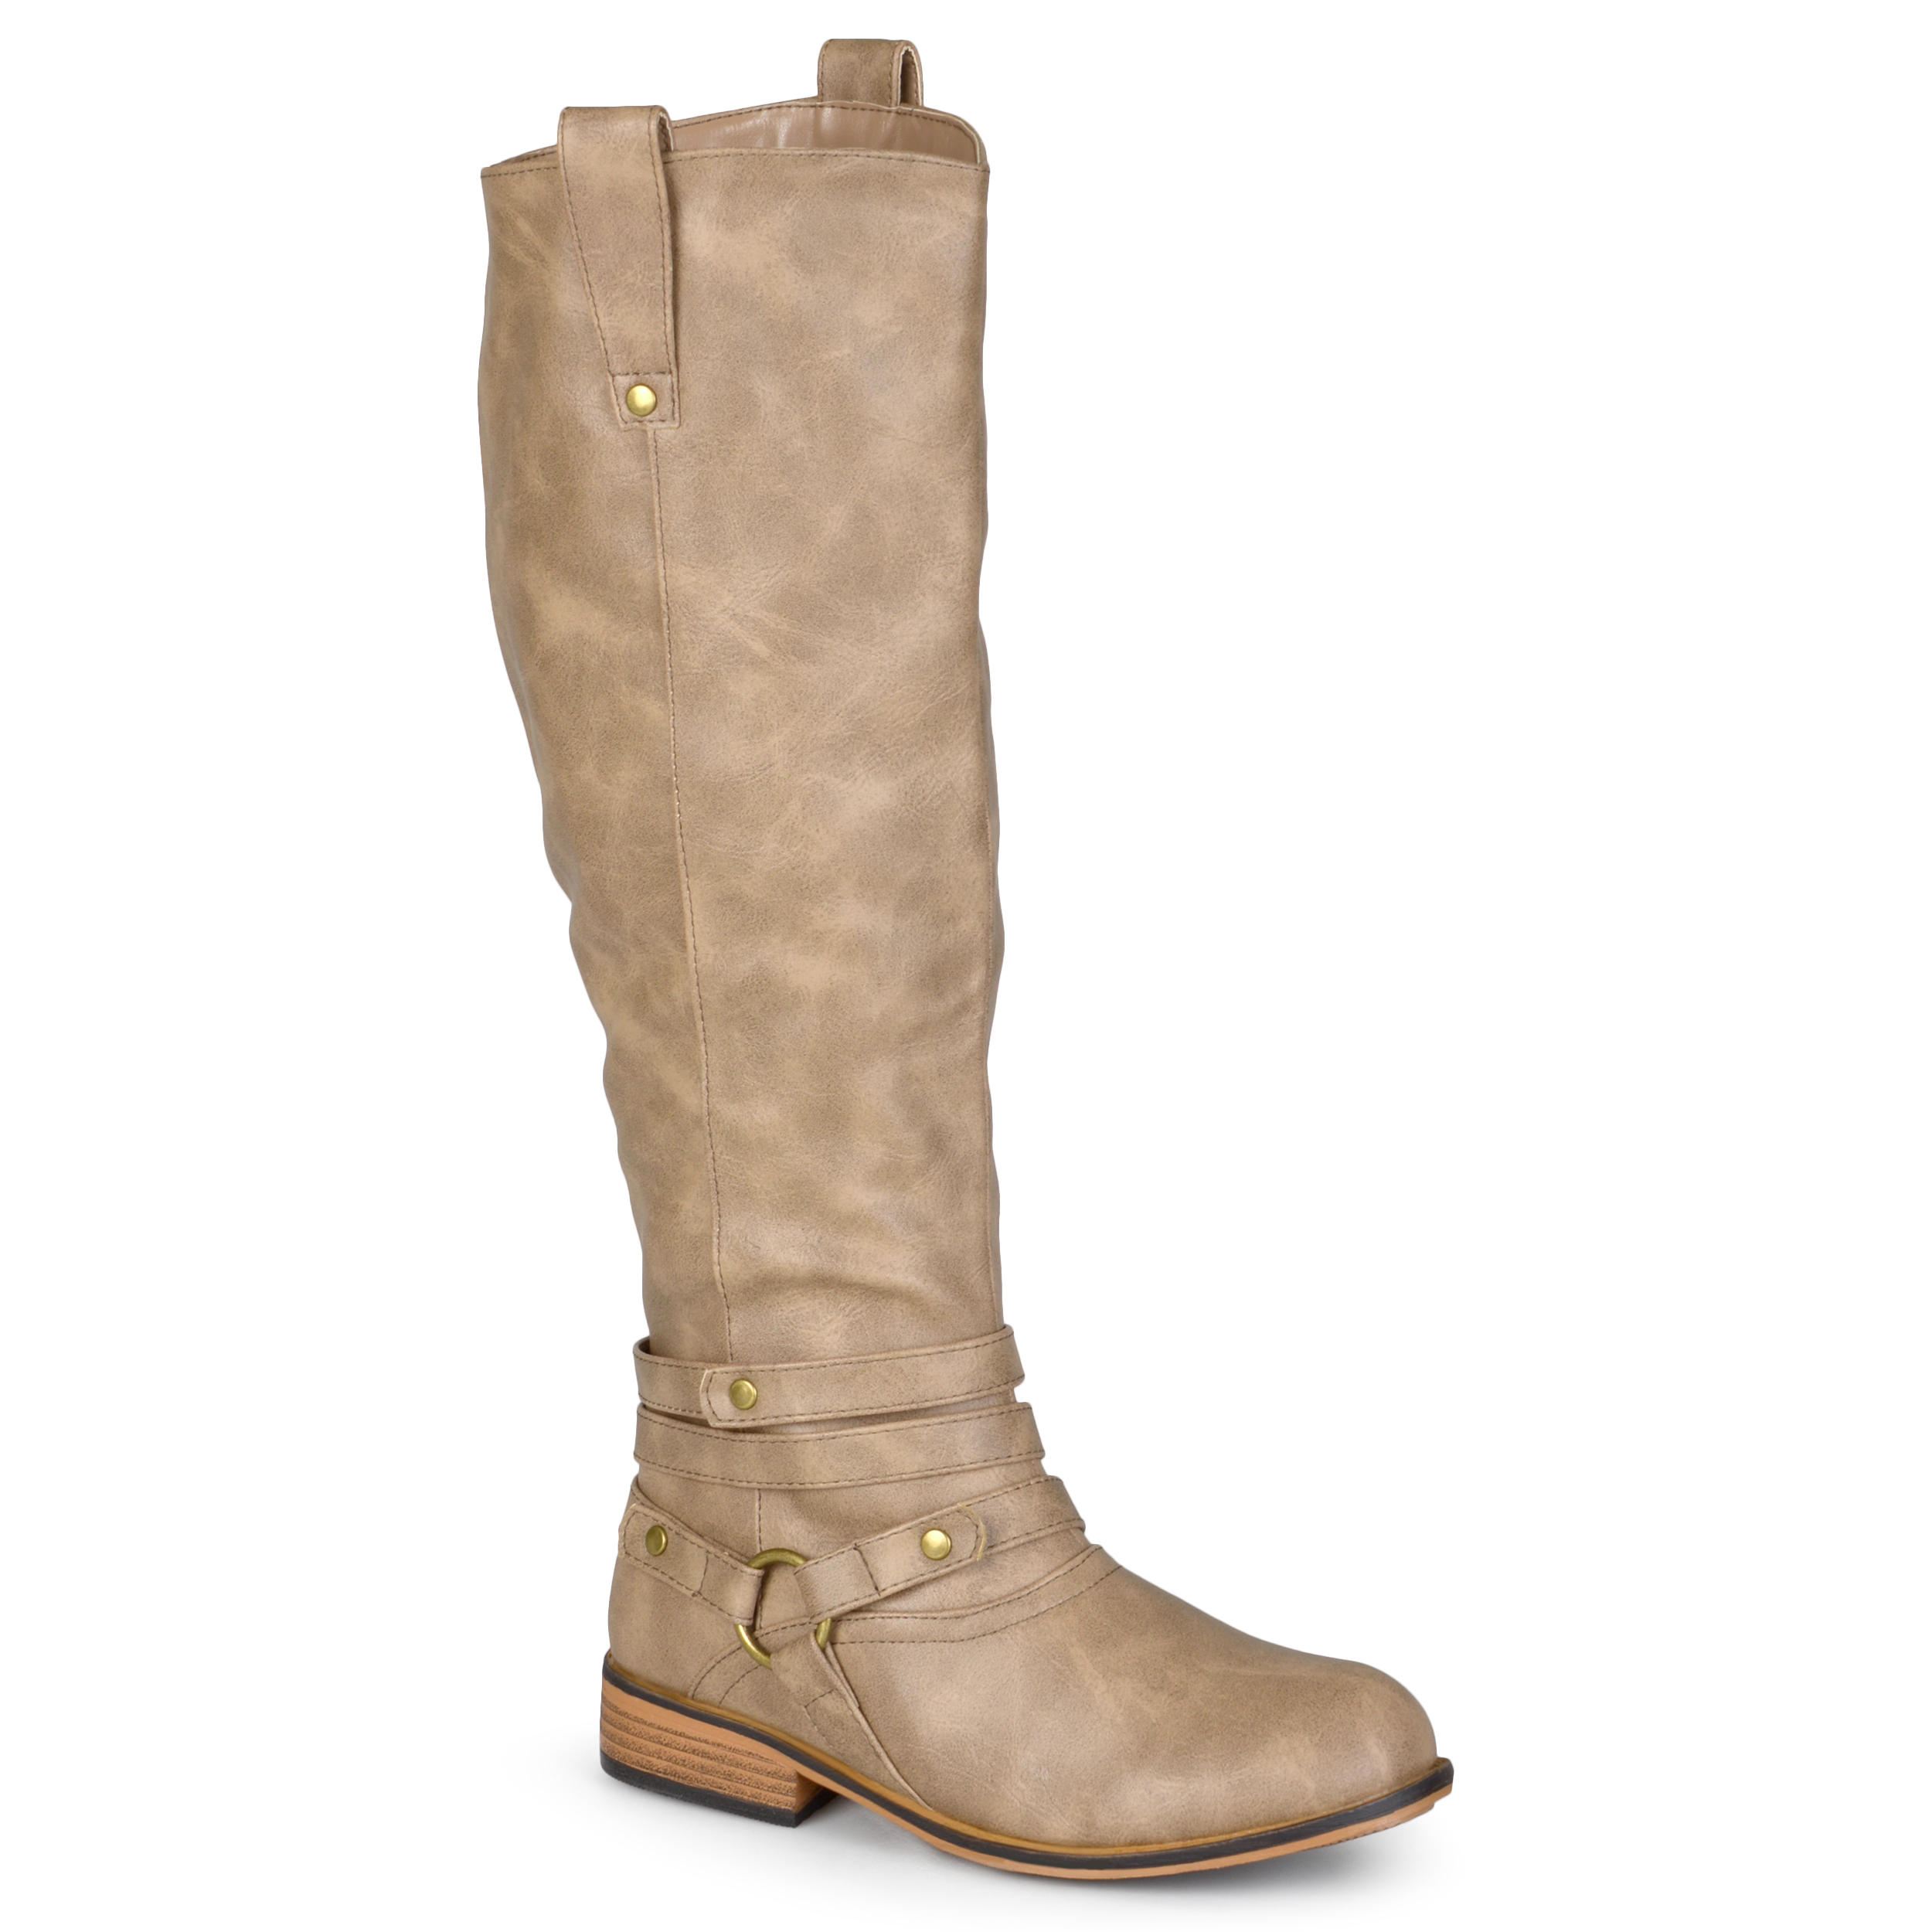 journee collection womens wide calf boots ebay